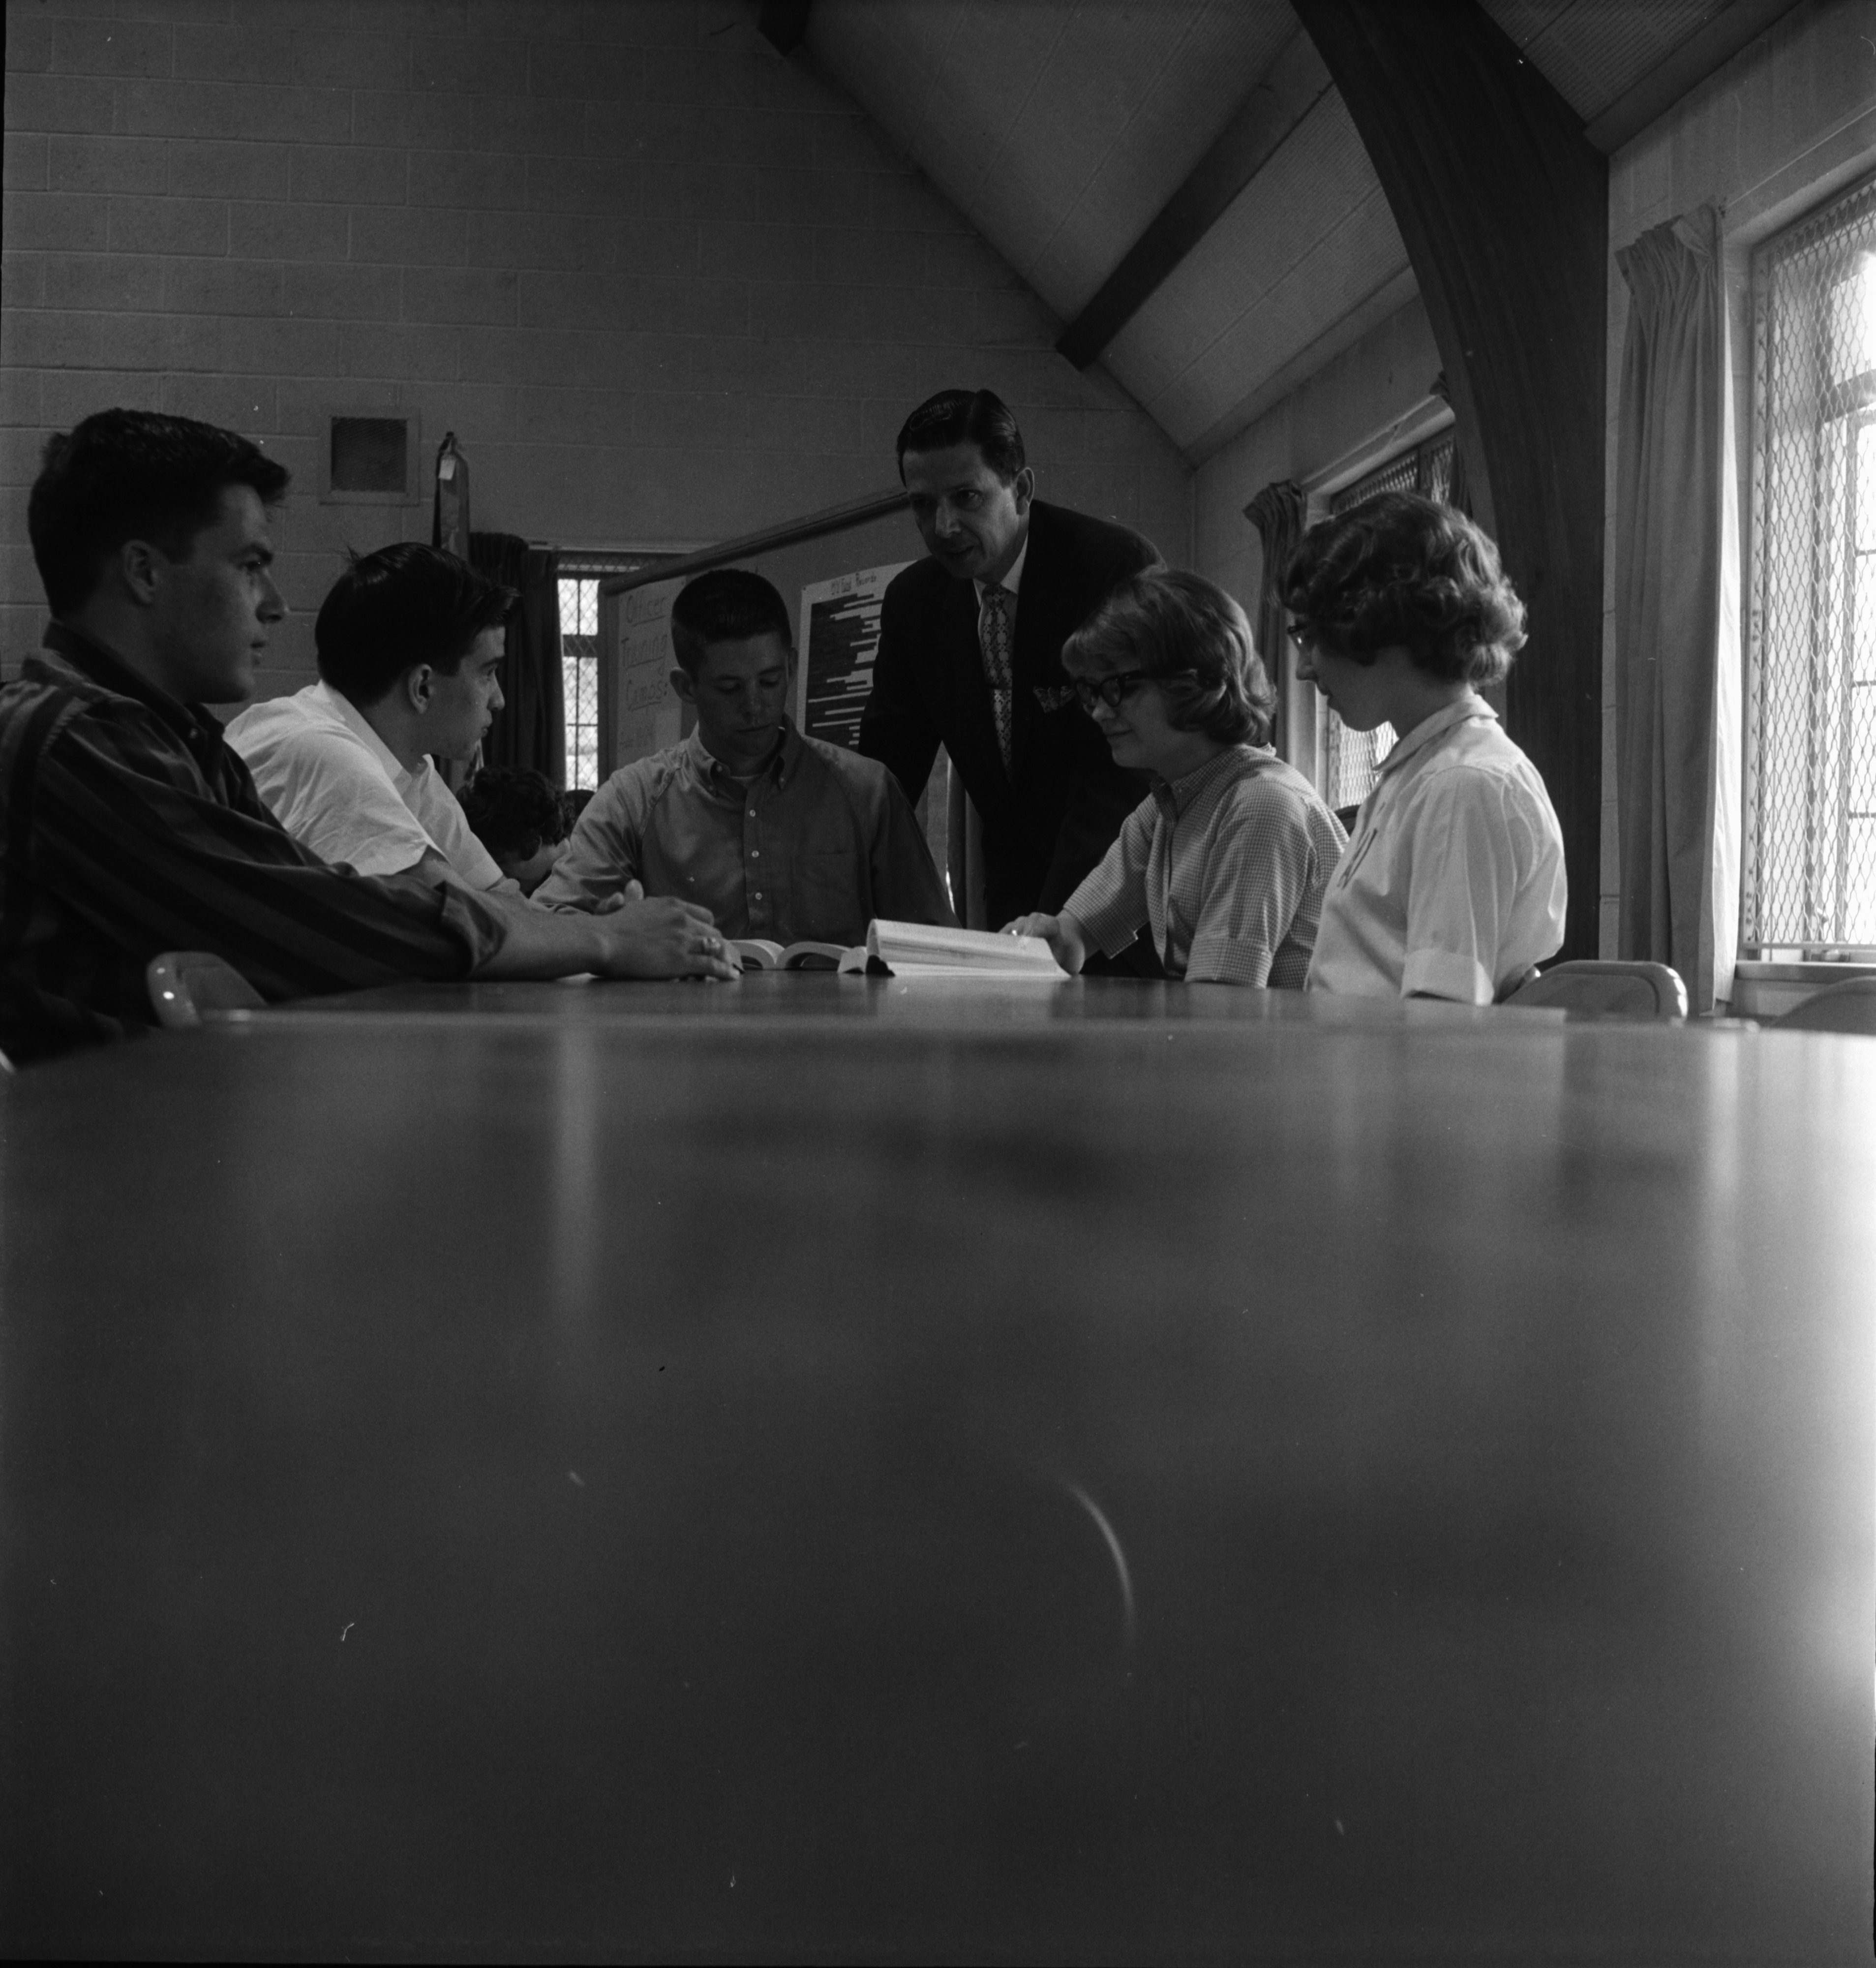 Rev. Kendall W. Cowing with Graduates to be Honored, First Methodist Church, May 1963 image